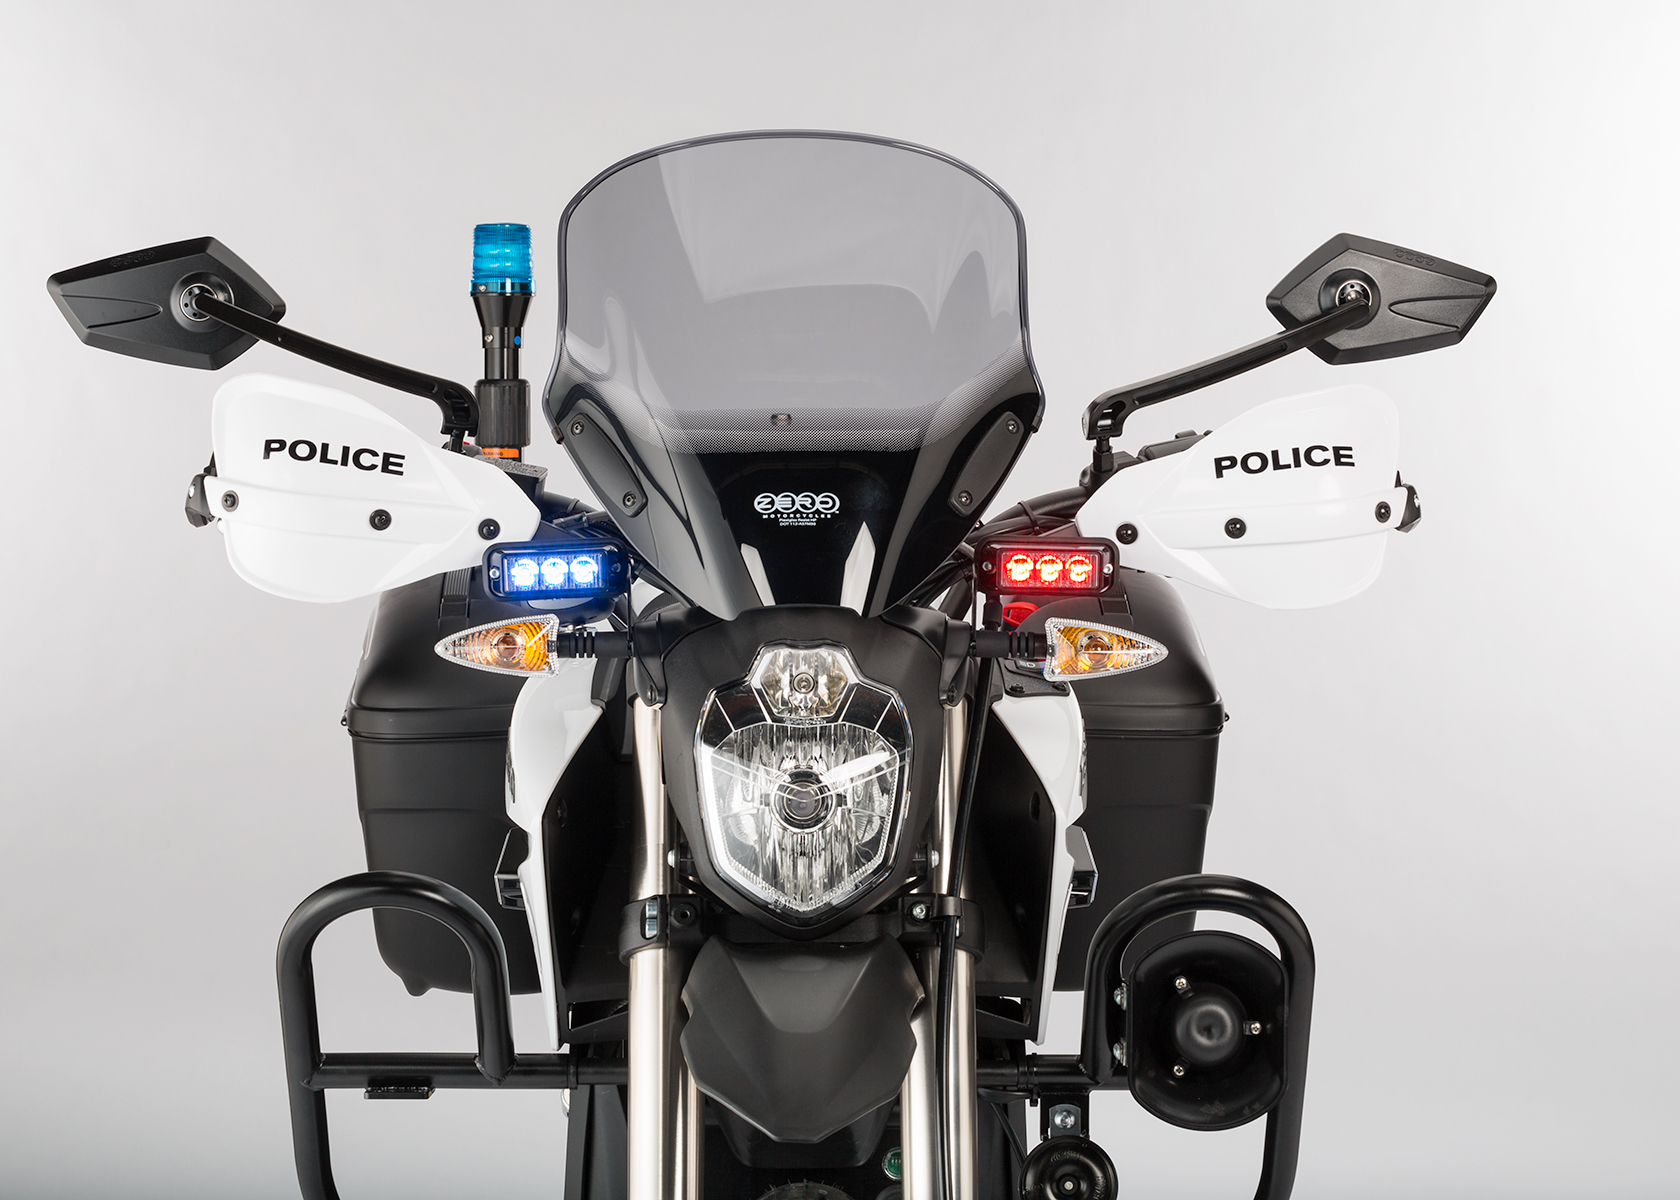 2014 Zero Police Electric Motorcycle: Front view